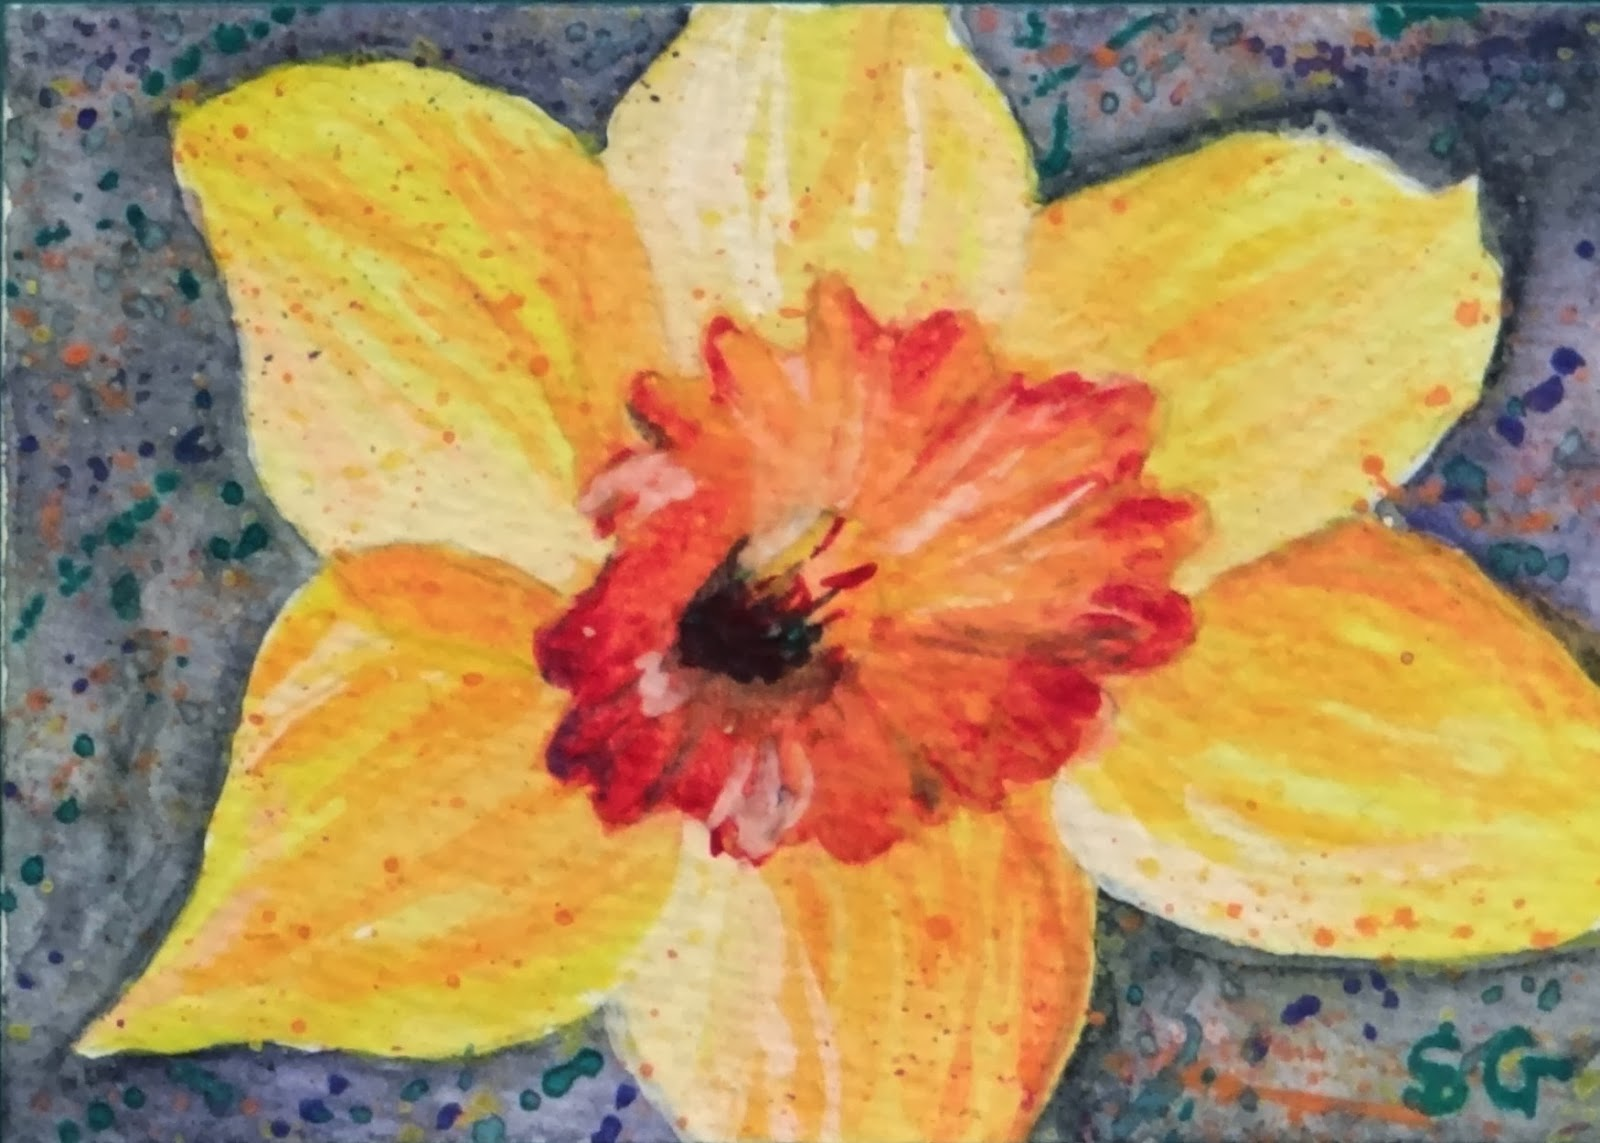 http://folksy.com/items/5328481-Daffodil-Painting-ACEO-